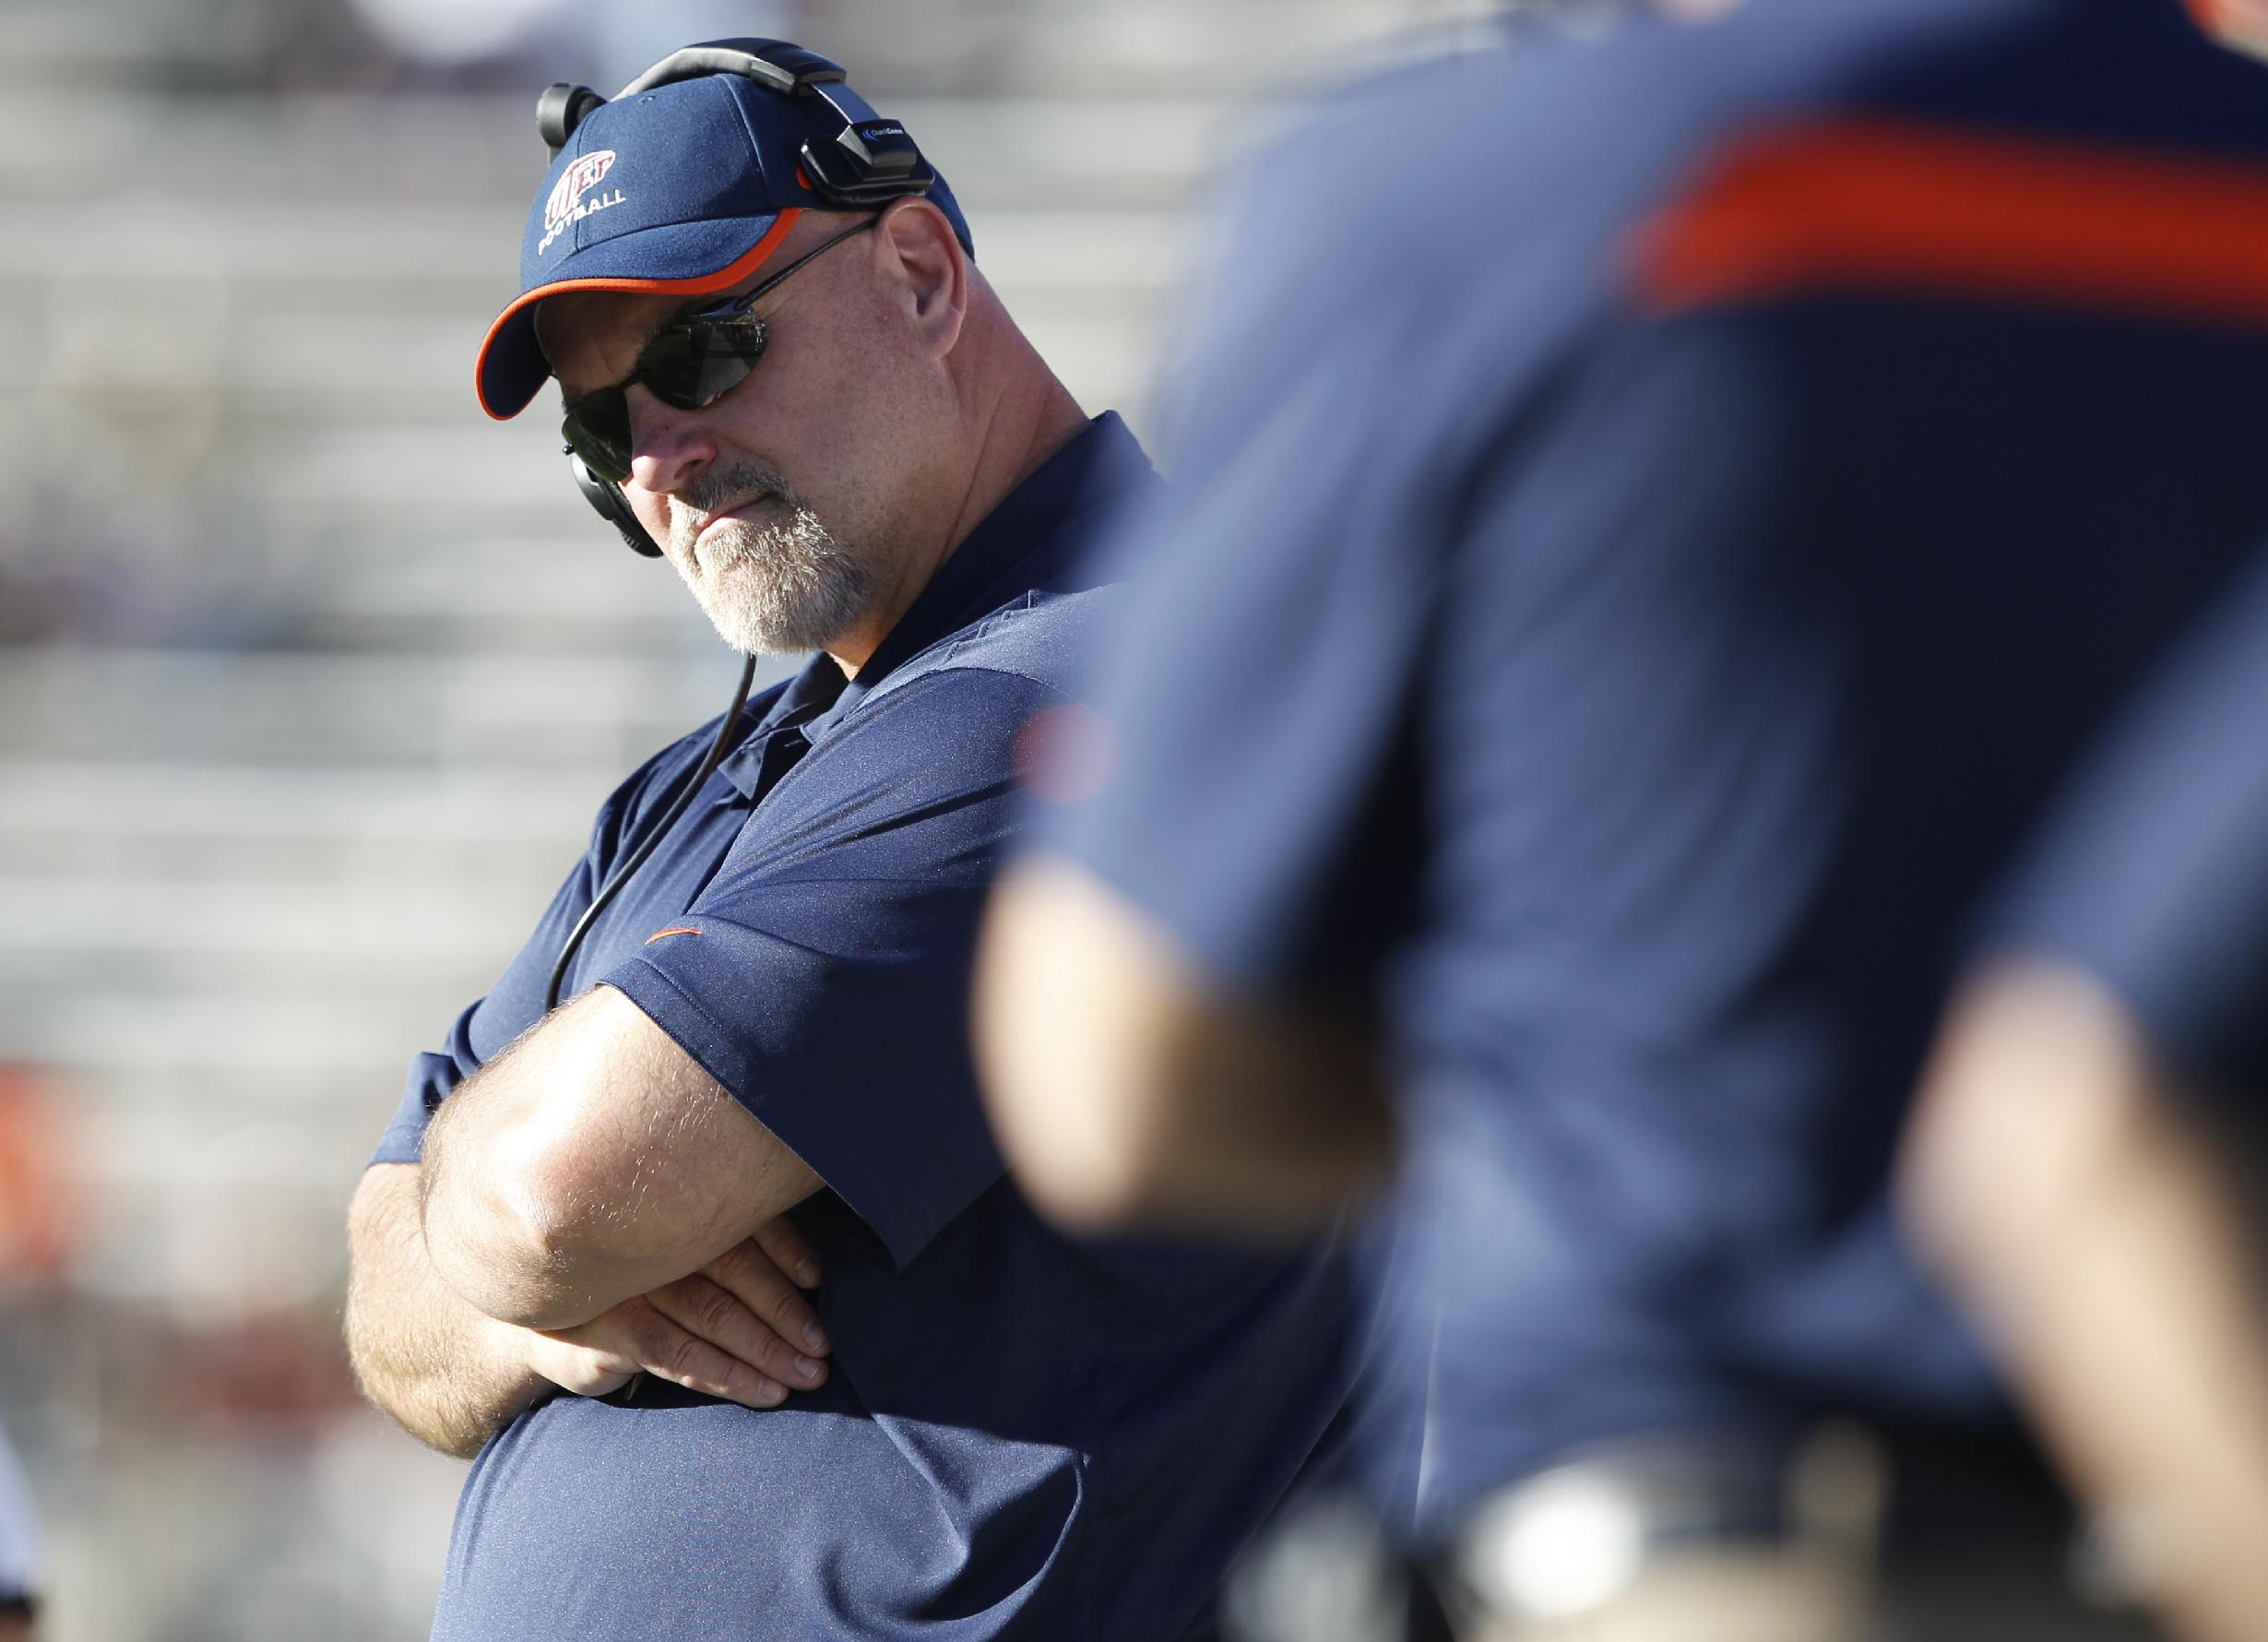 UTEP head coach Sean Kugler looks on against Colorado State as time runs out in the fourth quarter of Colorado State's 59-42 victory in an NCAA college football game in Fort Collins, Colo., Saturday, Sept. 28, 2013